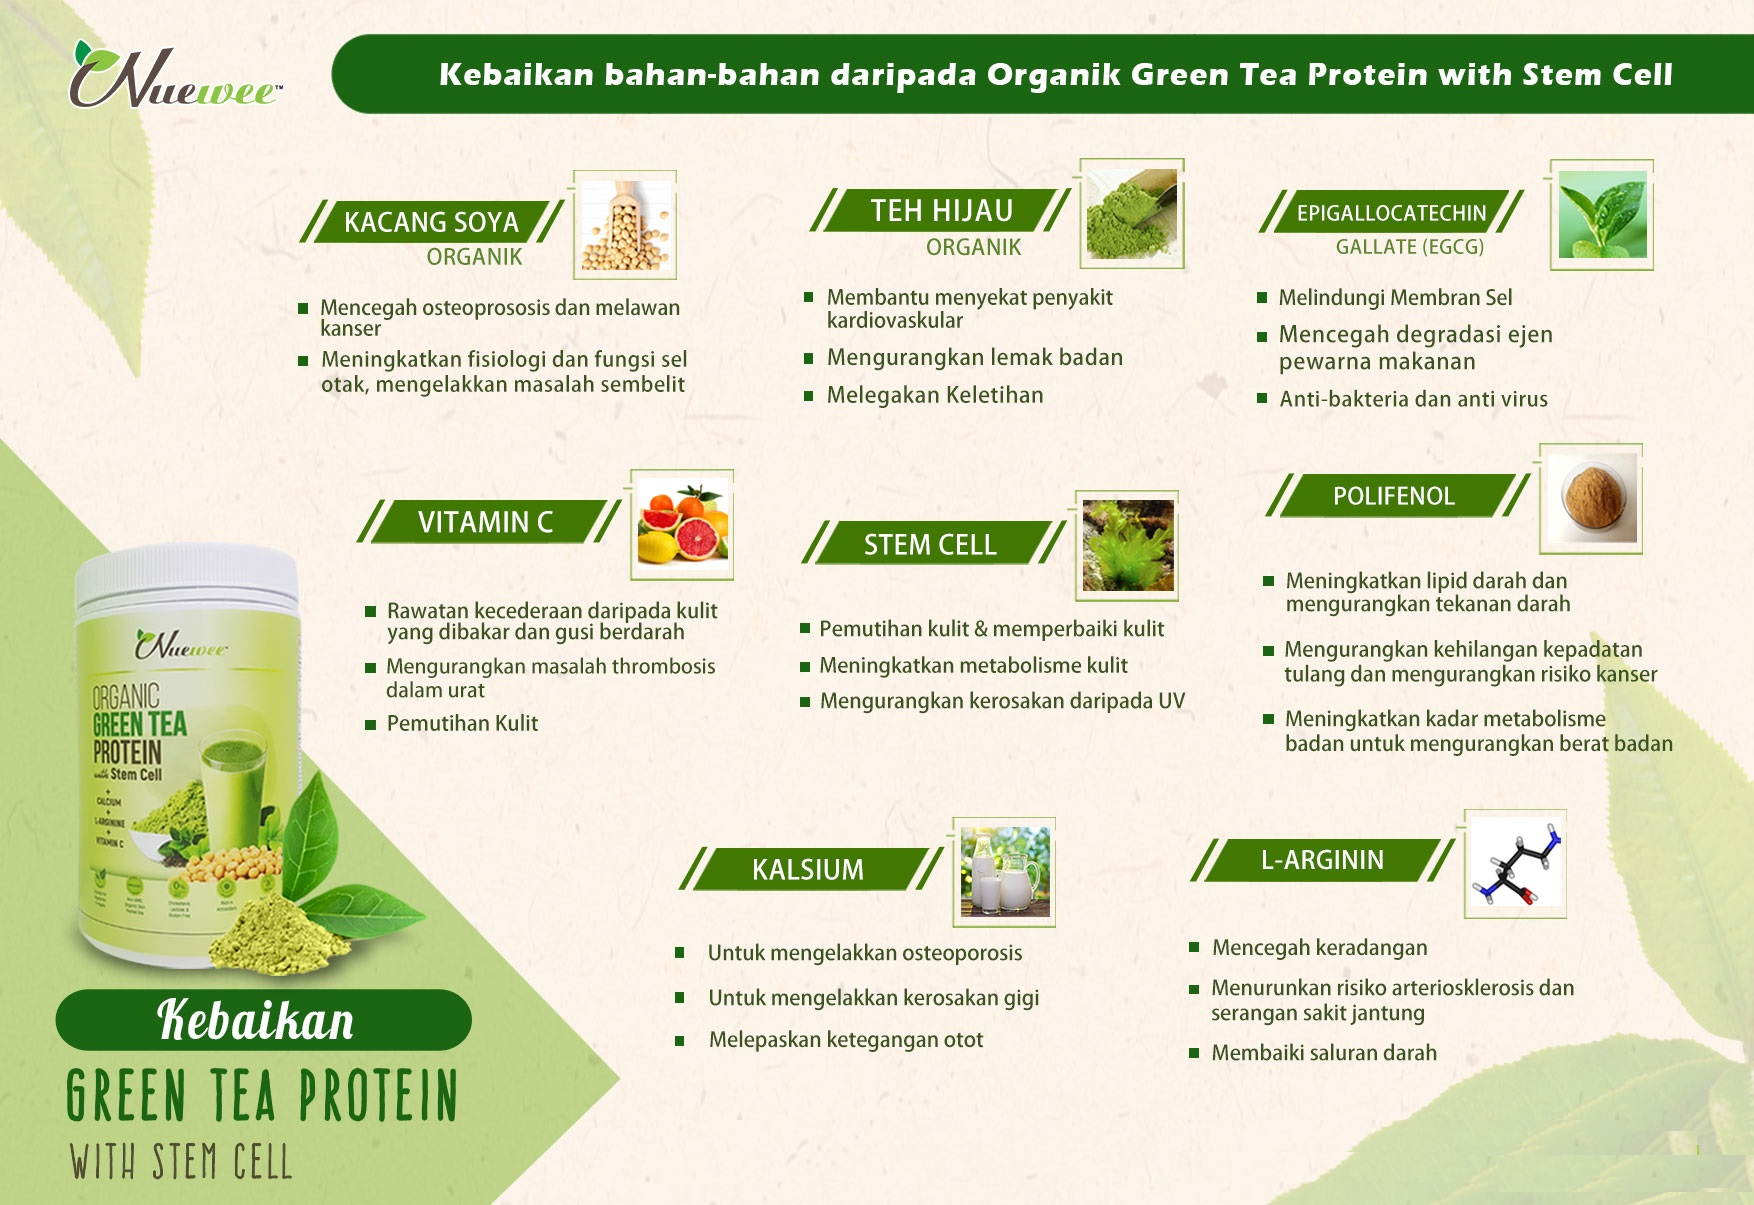 Ingredients-of-Nuewee-Organic-Green-Tea-Protein-with-Stem-Cell.jpg